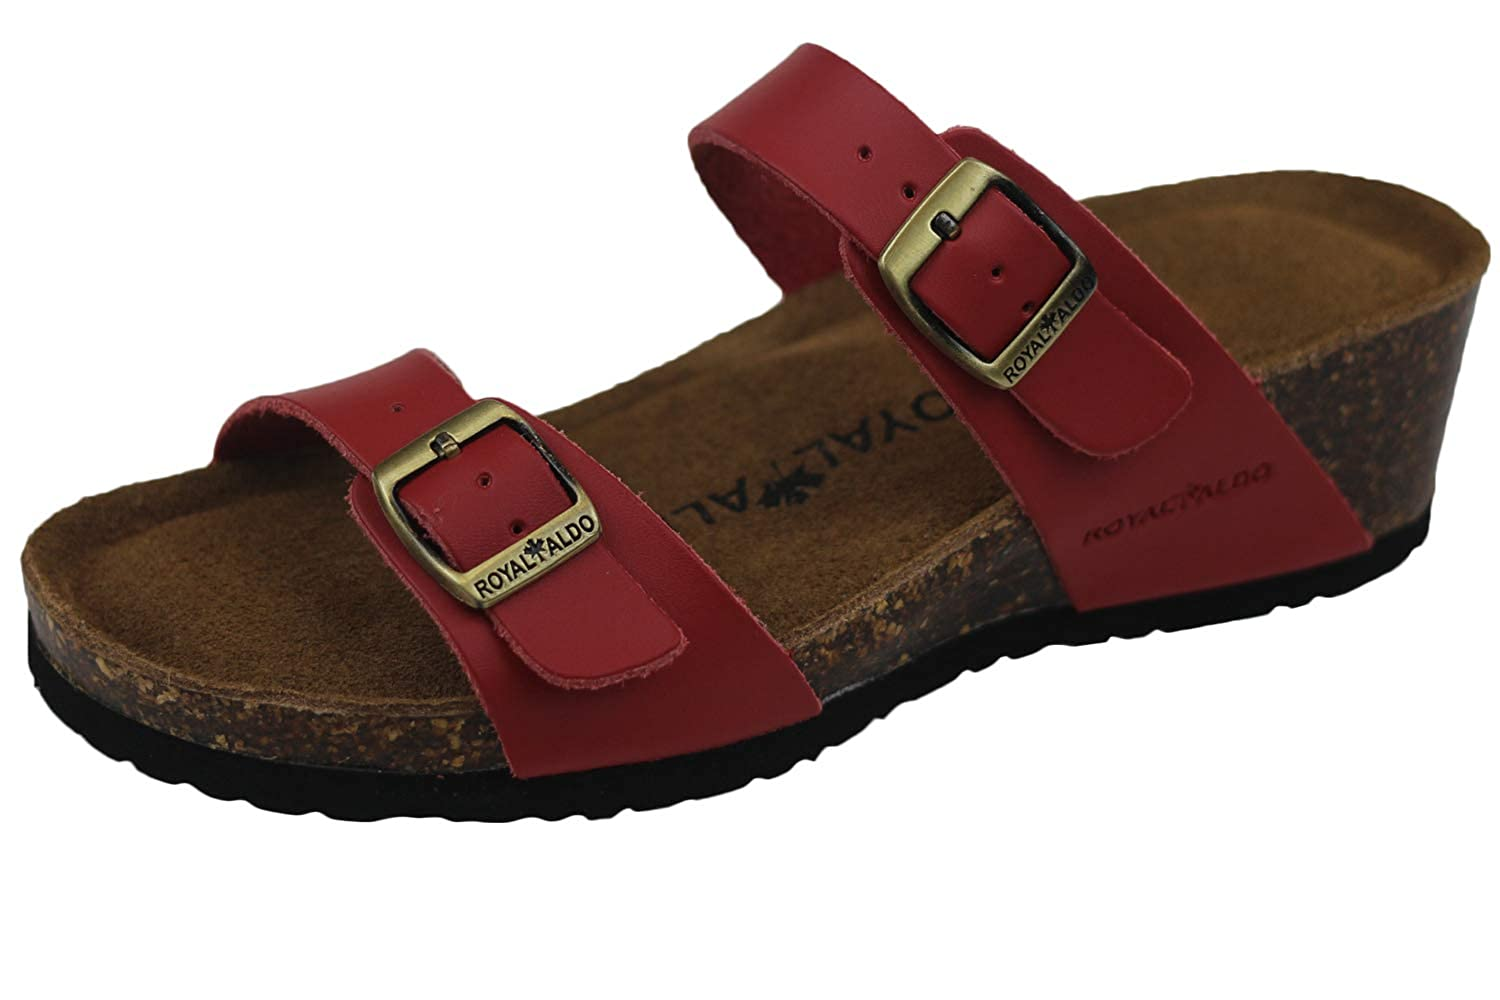 Red ROYAL ALDO Women's Wedges-Sandals, Classic Two-Strap with Two Adjustable Buckles, Comfortable Summer Leather shoes